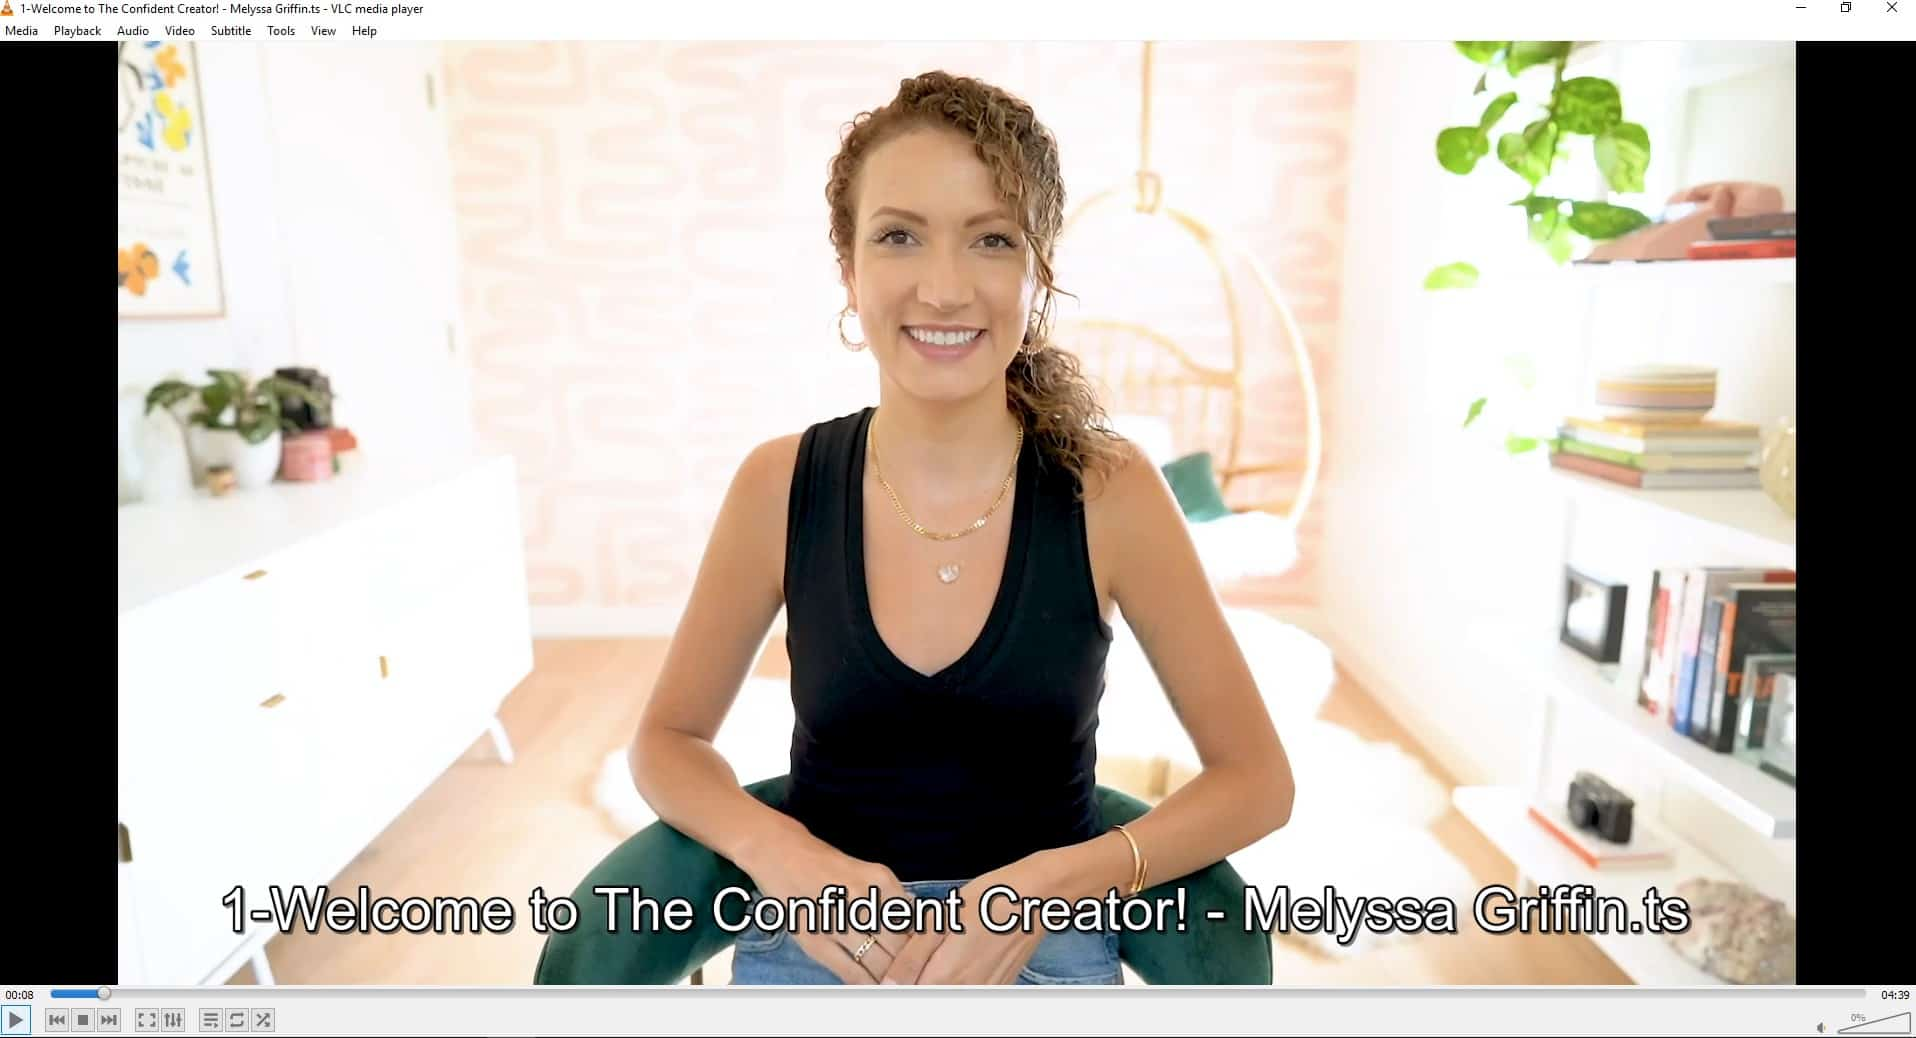 The Confident Creator by Melyssa Griffin Offer